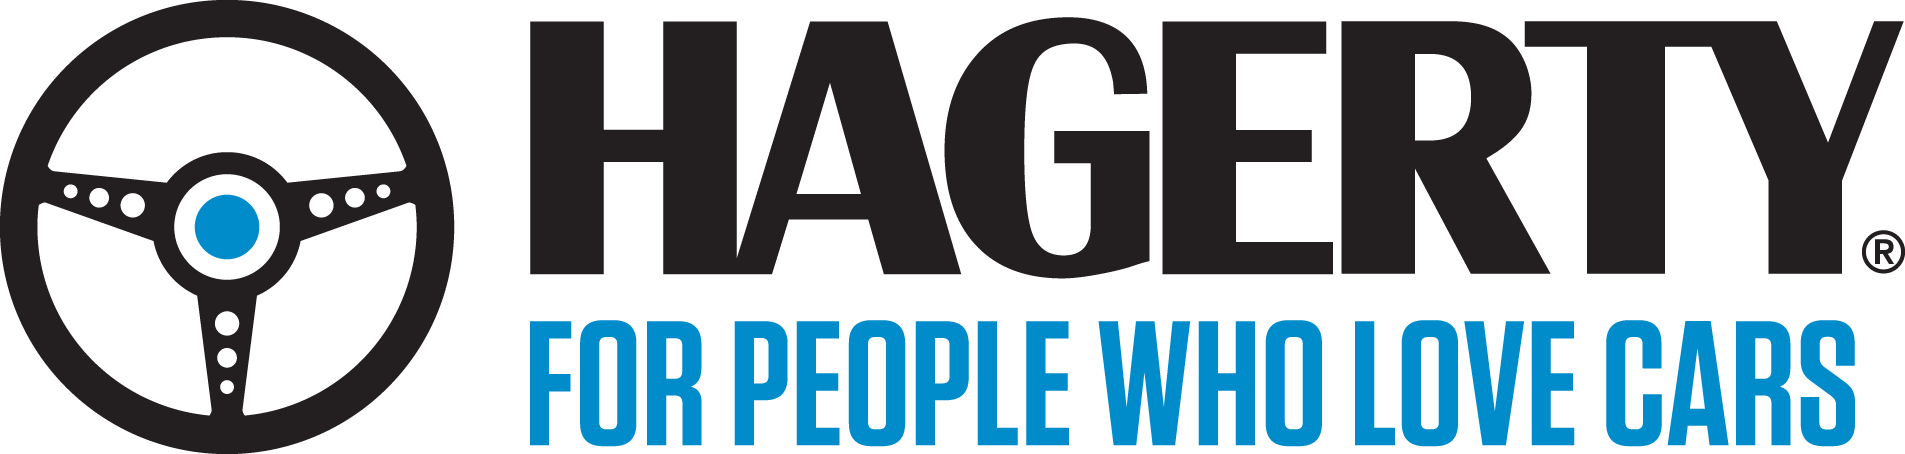 logo_Hagerty.png